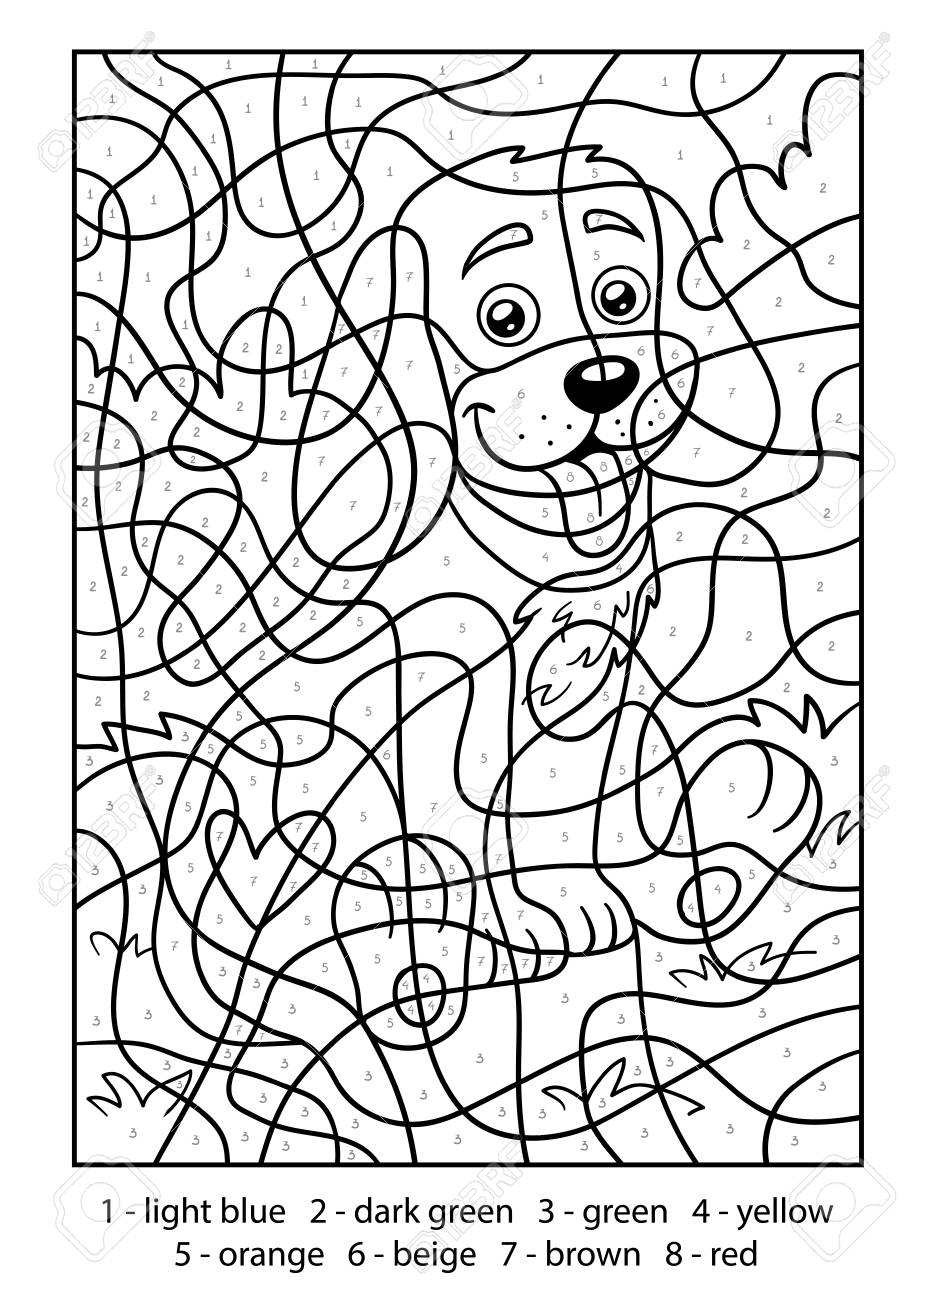 colouring by numbers worksheets summer color by number worksheets mamas learning corner by worksheets numbers colouring